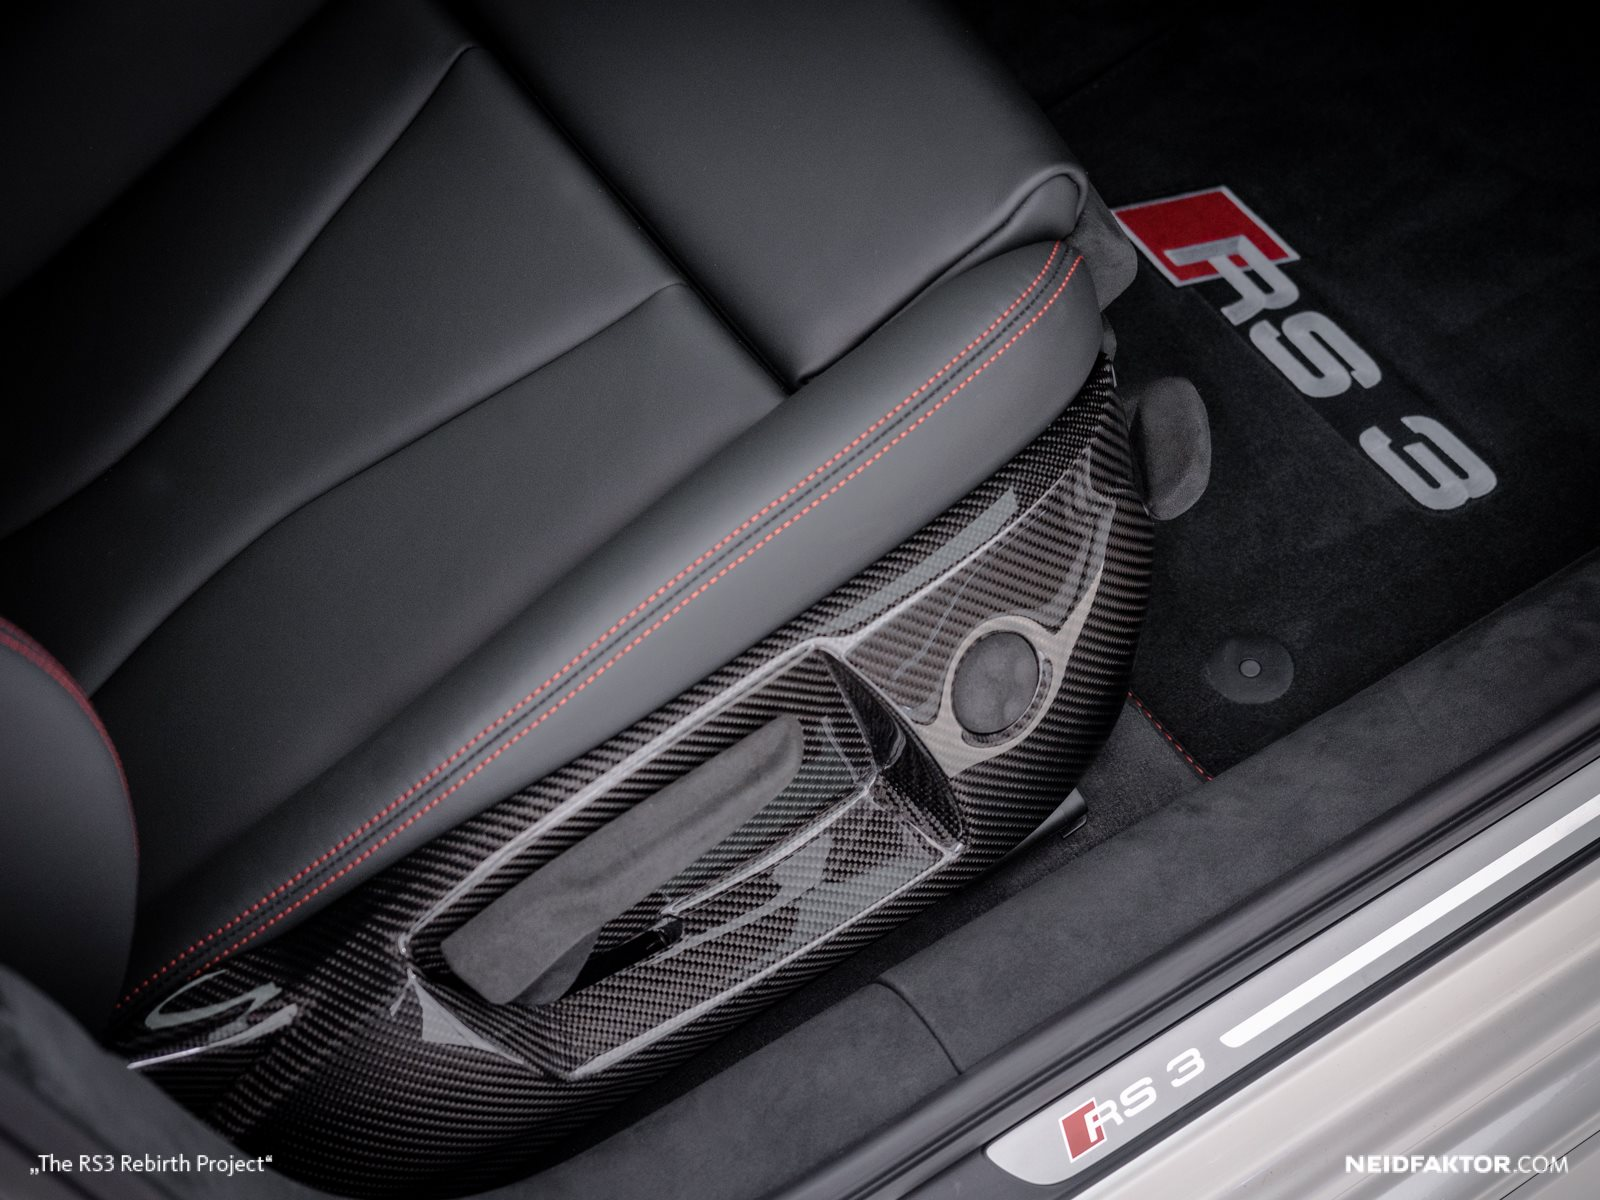 New Audi Rs Gets Carbon Fiber And Alcantara Interior From Neidfaktor Photo Gallery on Mercedes Benz Autonomous Car